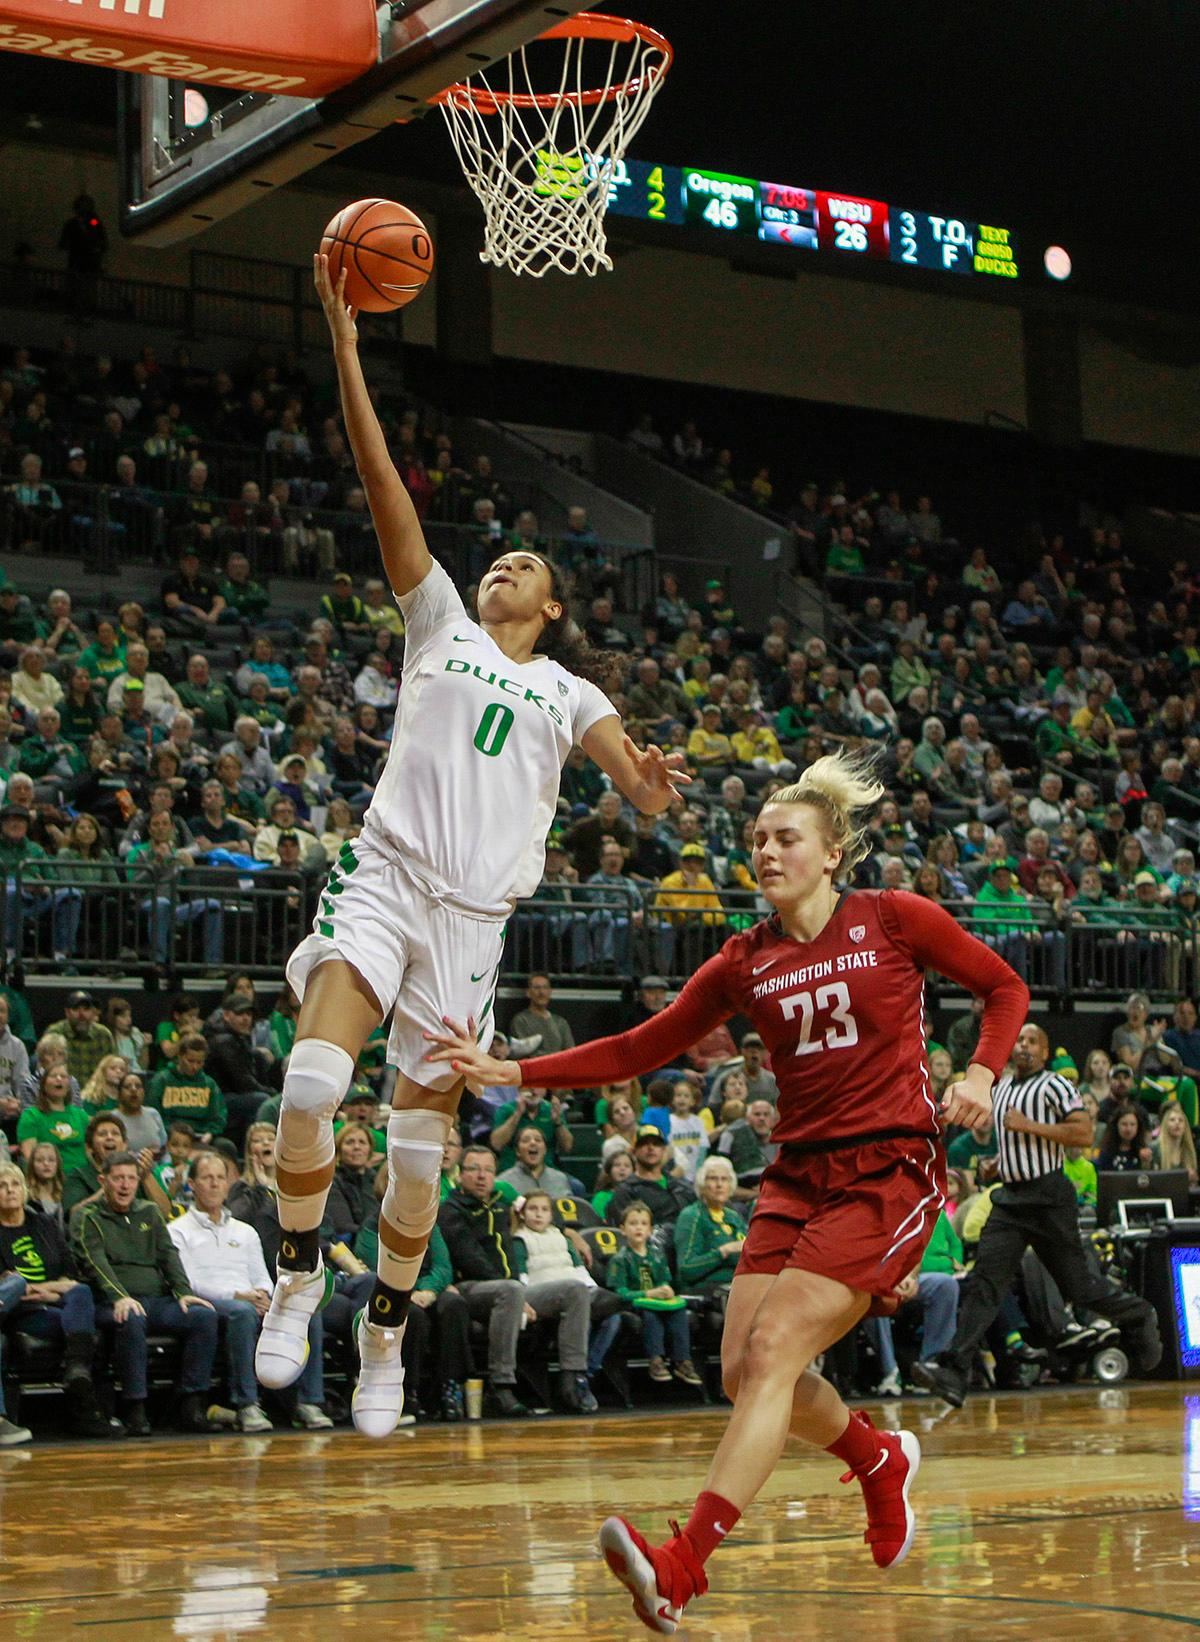 Oregon Ducks Satou Sabally (#0) goes in for a layup as Washington State University Cougars Alexys Swedlund (#23) follows her to the basket. In their first conference basketball game of the season, the Oregon Women Ducks defeated the Washington State Cougars 89-56 in Matt Knight Arena Saturday afternoon. Oregon's Ruthy Hebard ran up 25 points with 10 rebounds. Sabrina Ionescu shot 25 points with five three-pointers and three rebounds. Lexi Bando added 18 points, with four three-pointers and pulled down three rebounds. Satou Sabally ended the game with 14 points with one three-pointer and two rebounds. The Ducks are now 12-2 overall with 1-0 in conference and the Cougars stand at 7-6 overall and 0-1 in conference play. The Oregon Women Ducks next play the University of Washington Huskies at 1:00 pm on Sunday. Photo by Rhianna Gelhart, Oregon News Lab